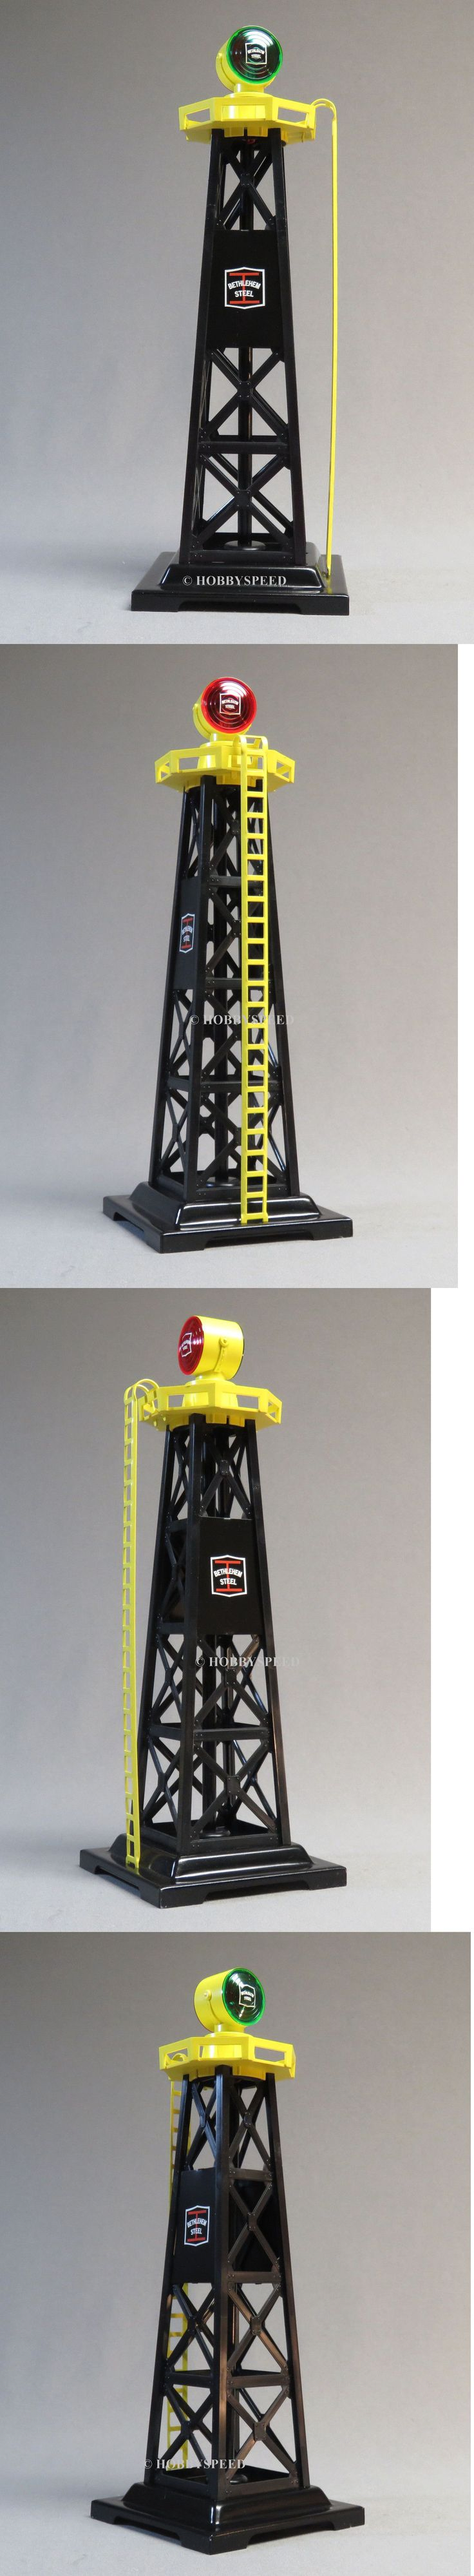 Other O Scale 485: Rmt Aristo Rotating Lighted Beacon Tower Bethlehem Steel O Gauge Train 99532-19 -> BUY IT NOW ONLY: $64.84 on eBay!